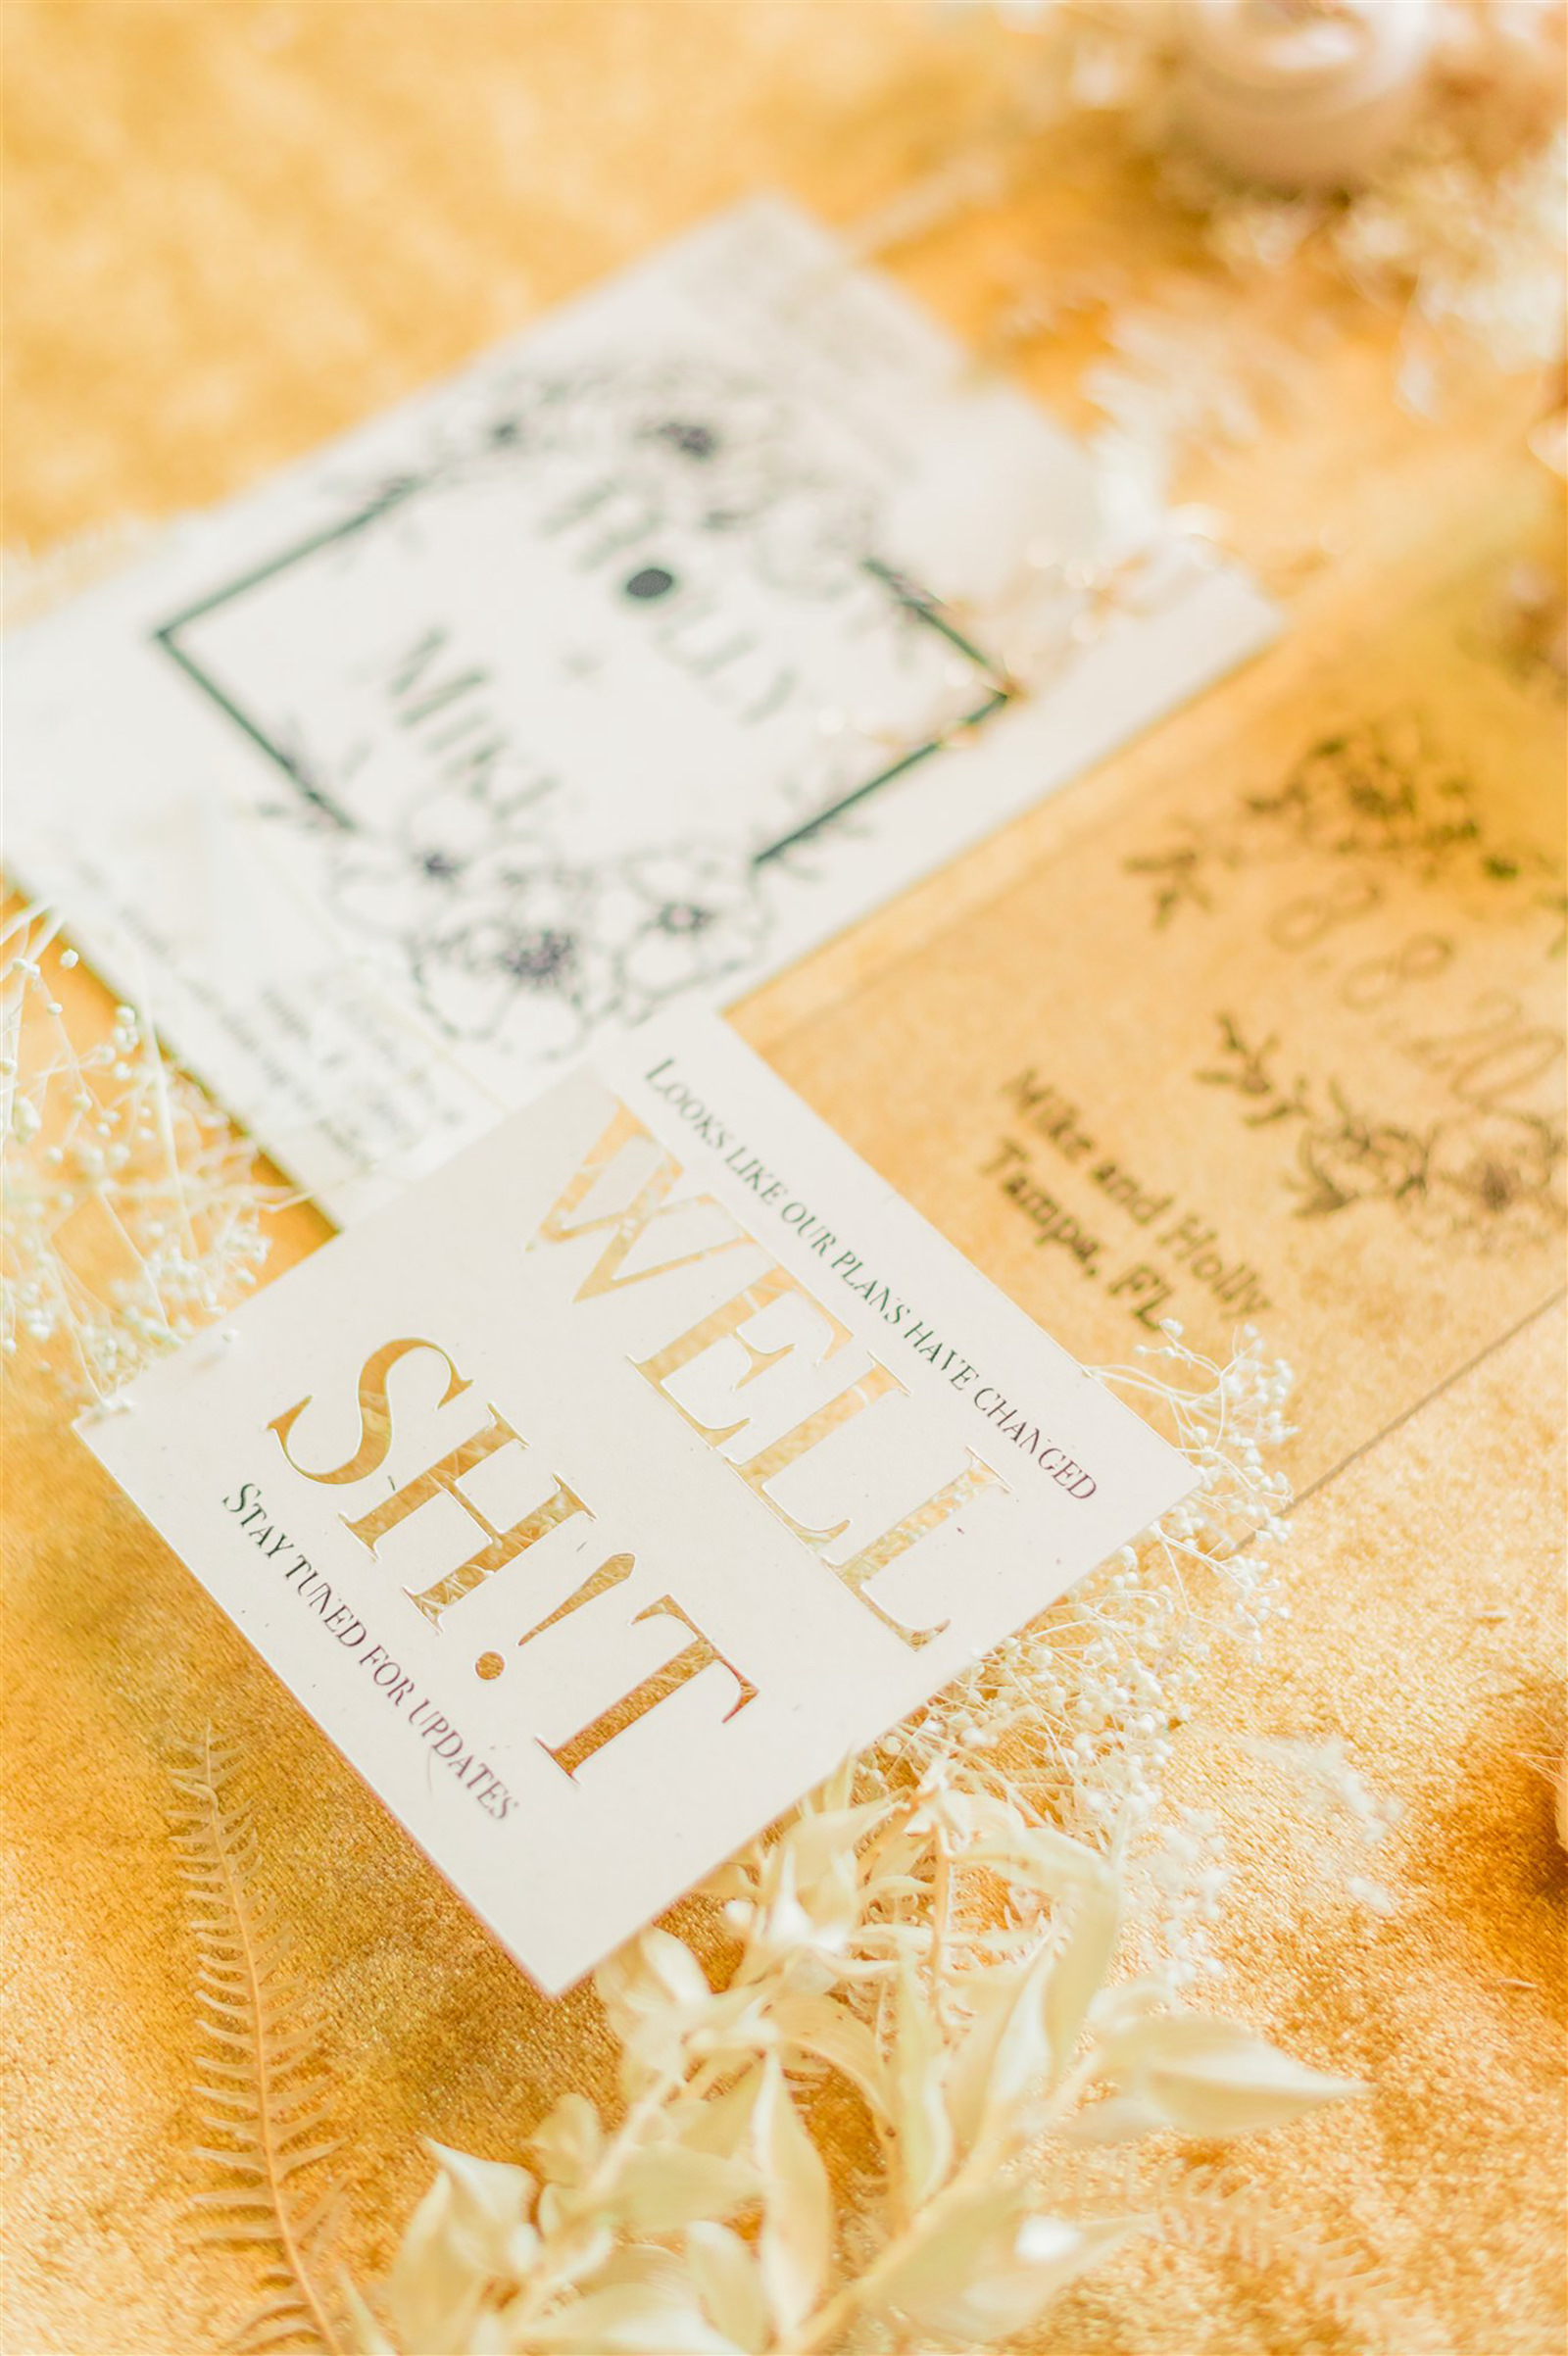 Unique and Fun Gold Foil Well Sh!t Wedding Stationery from Tampa Bay Wedding Planner John Campbell Weddings